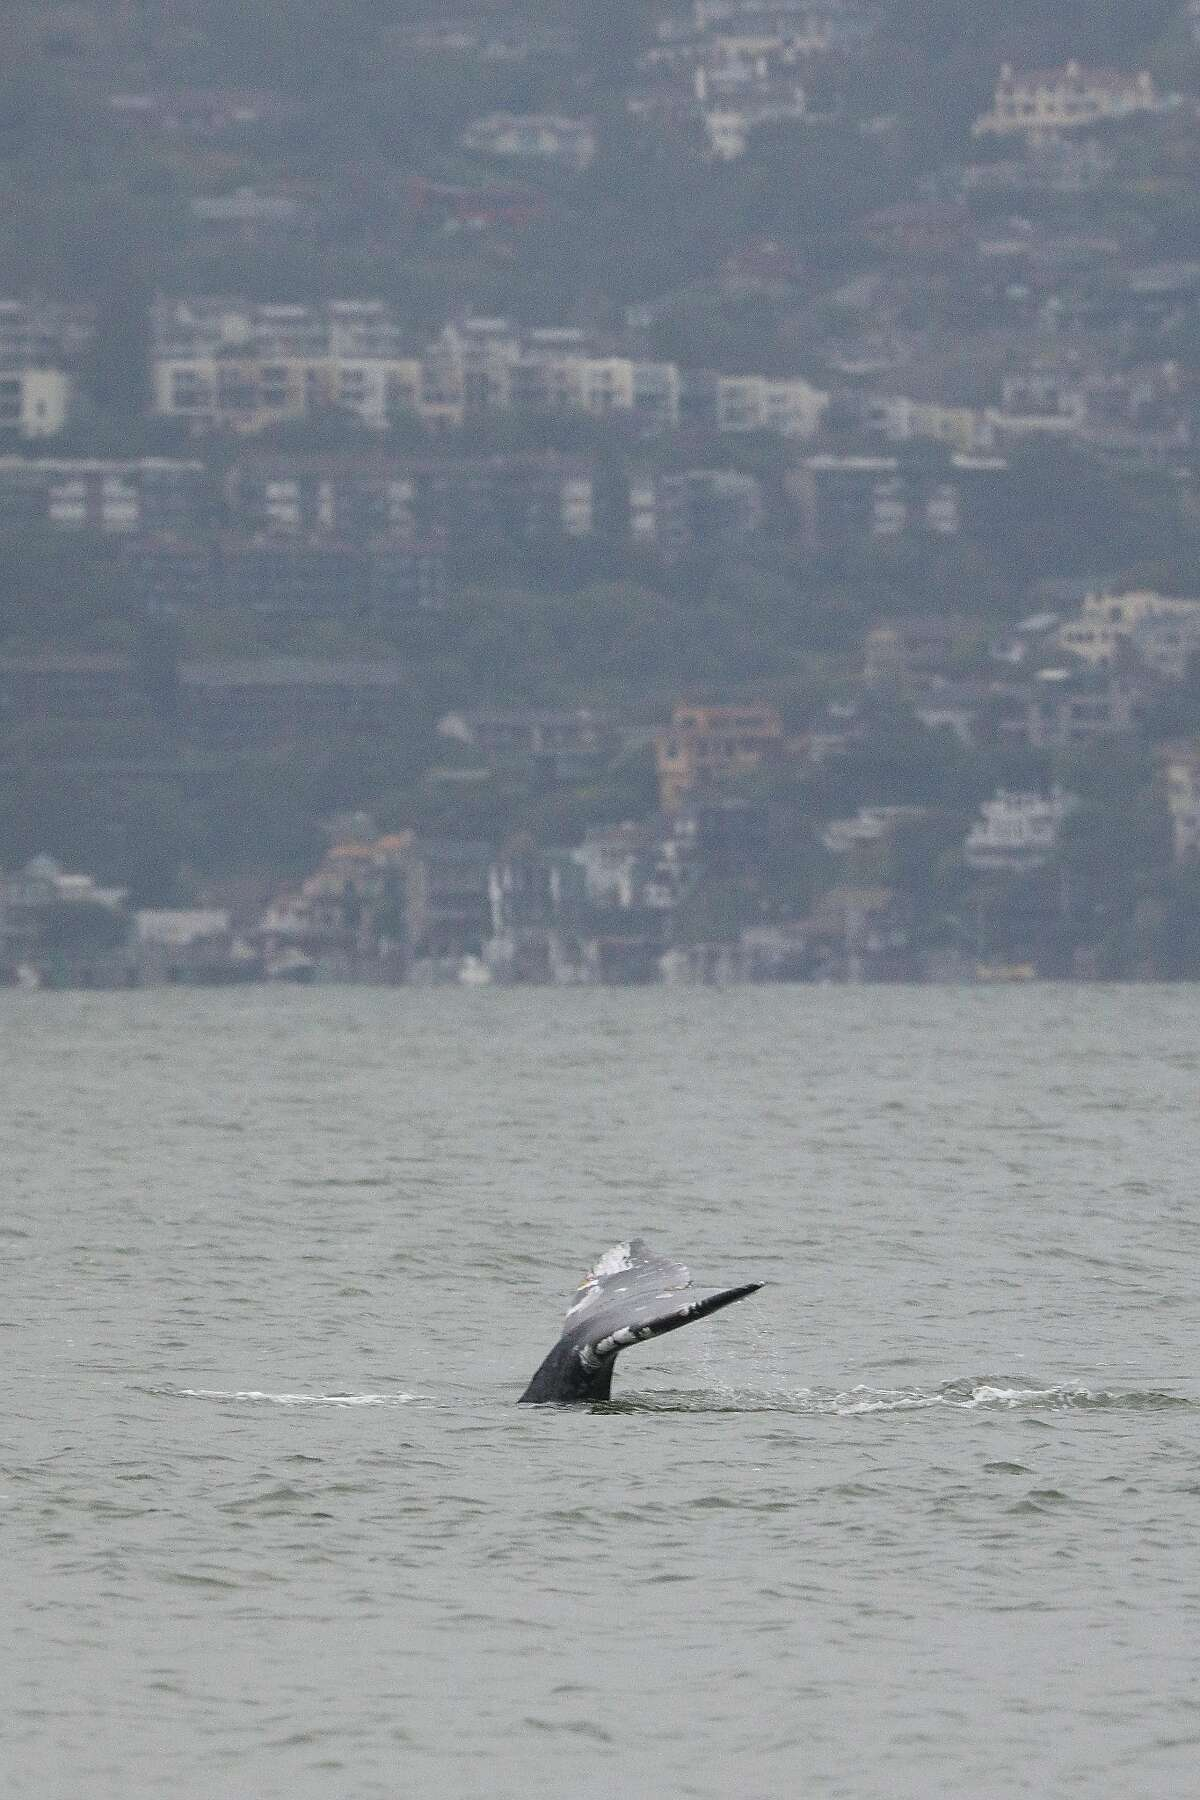 A whale's tail breaks the surface of the water as it swims in the San Francisco Bay on Friday, March 22, 2019 in San Francisco, Calif.